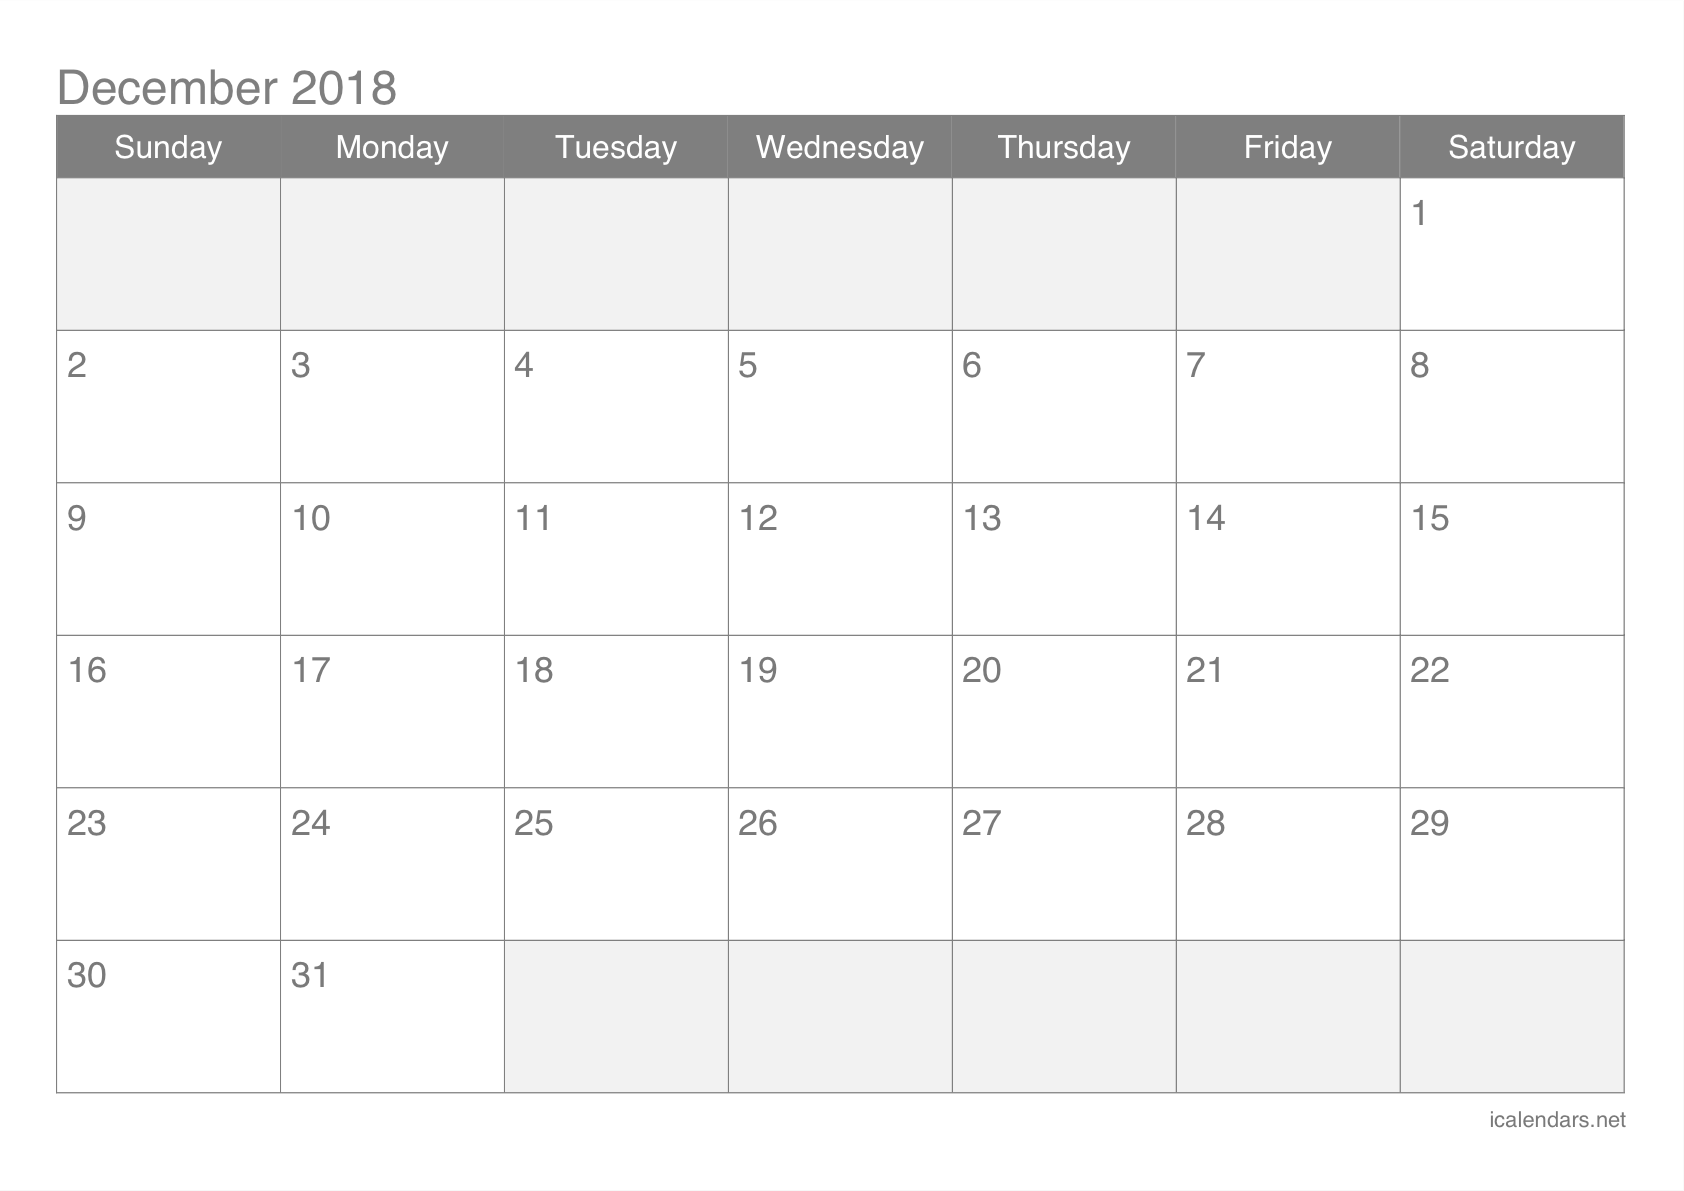 December 2018 Printable Calendar Icalendars Net